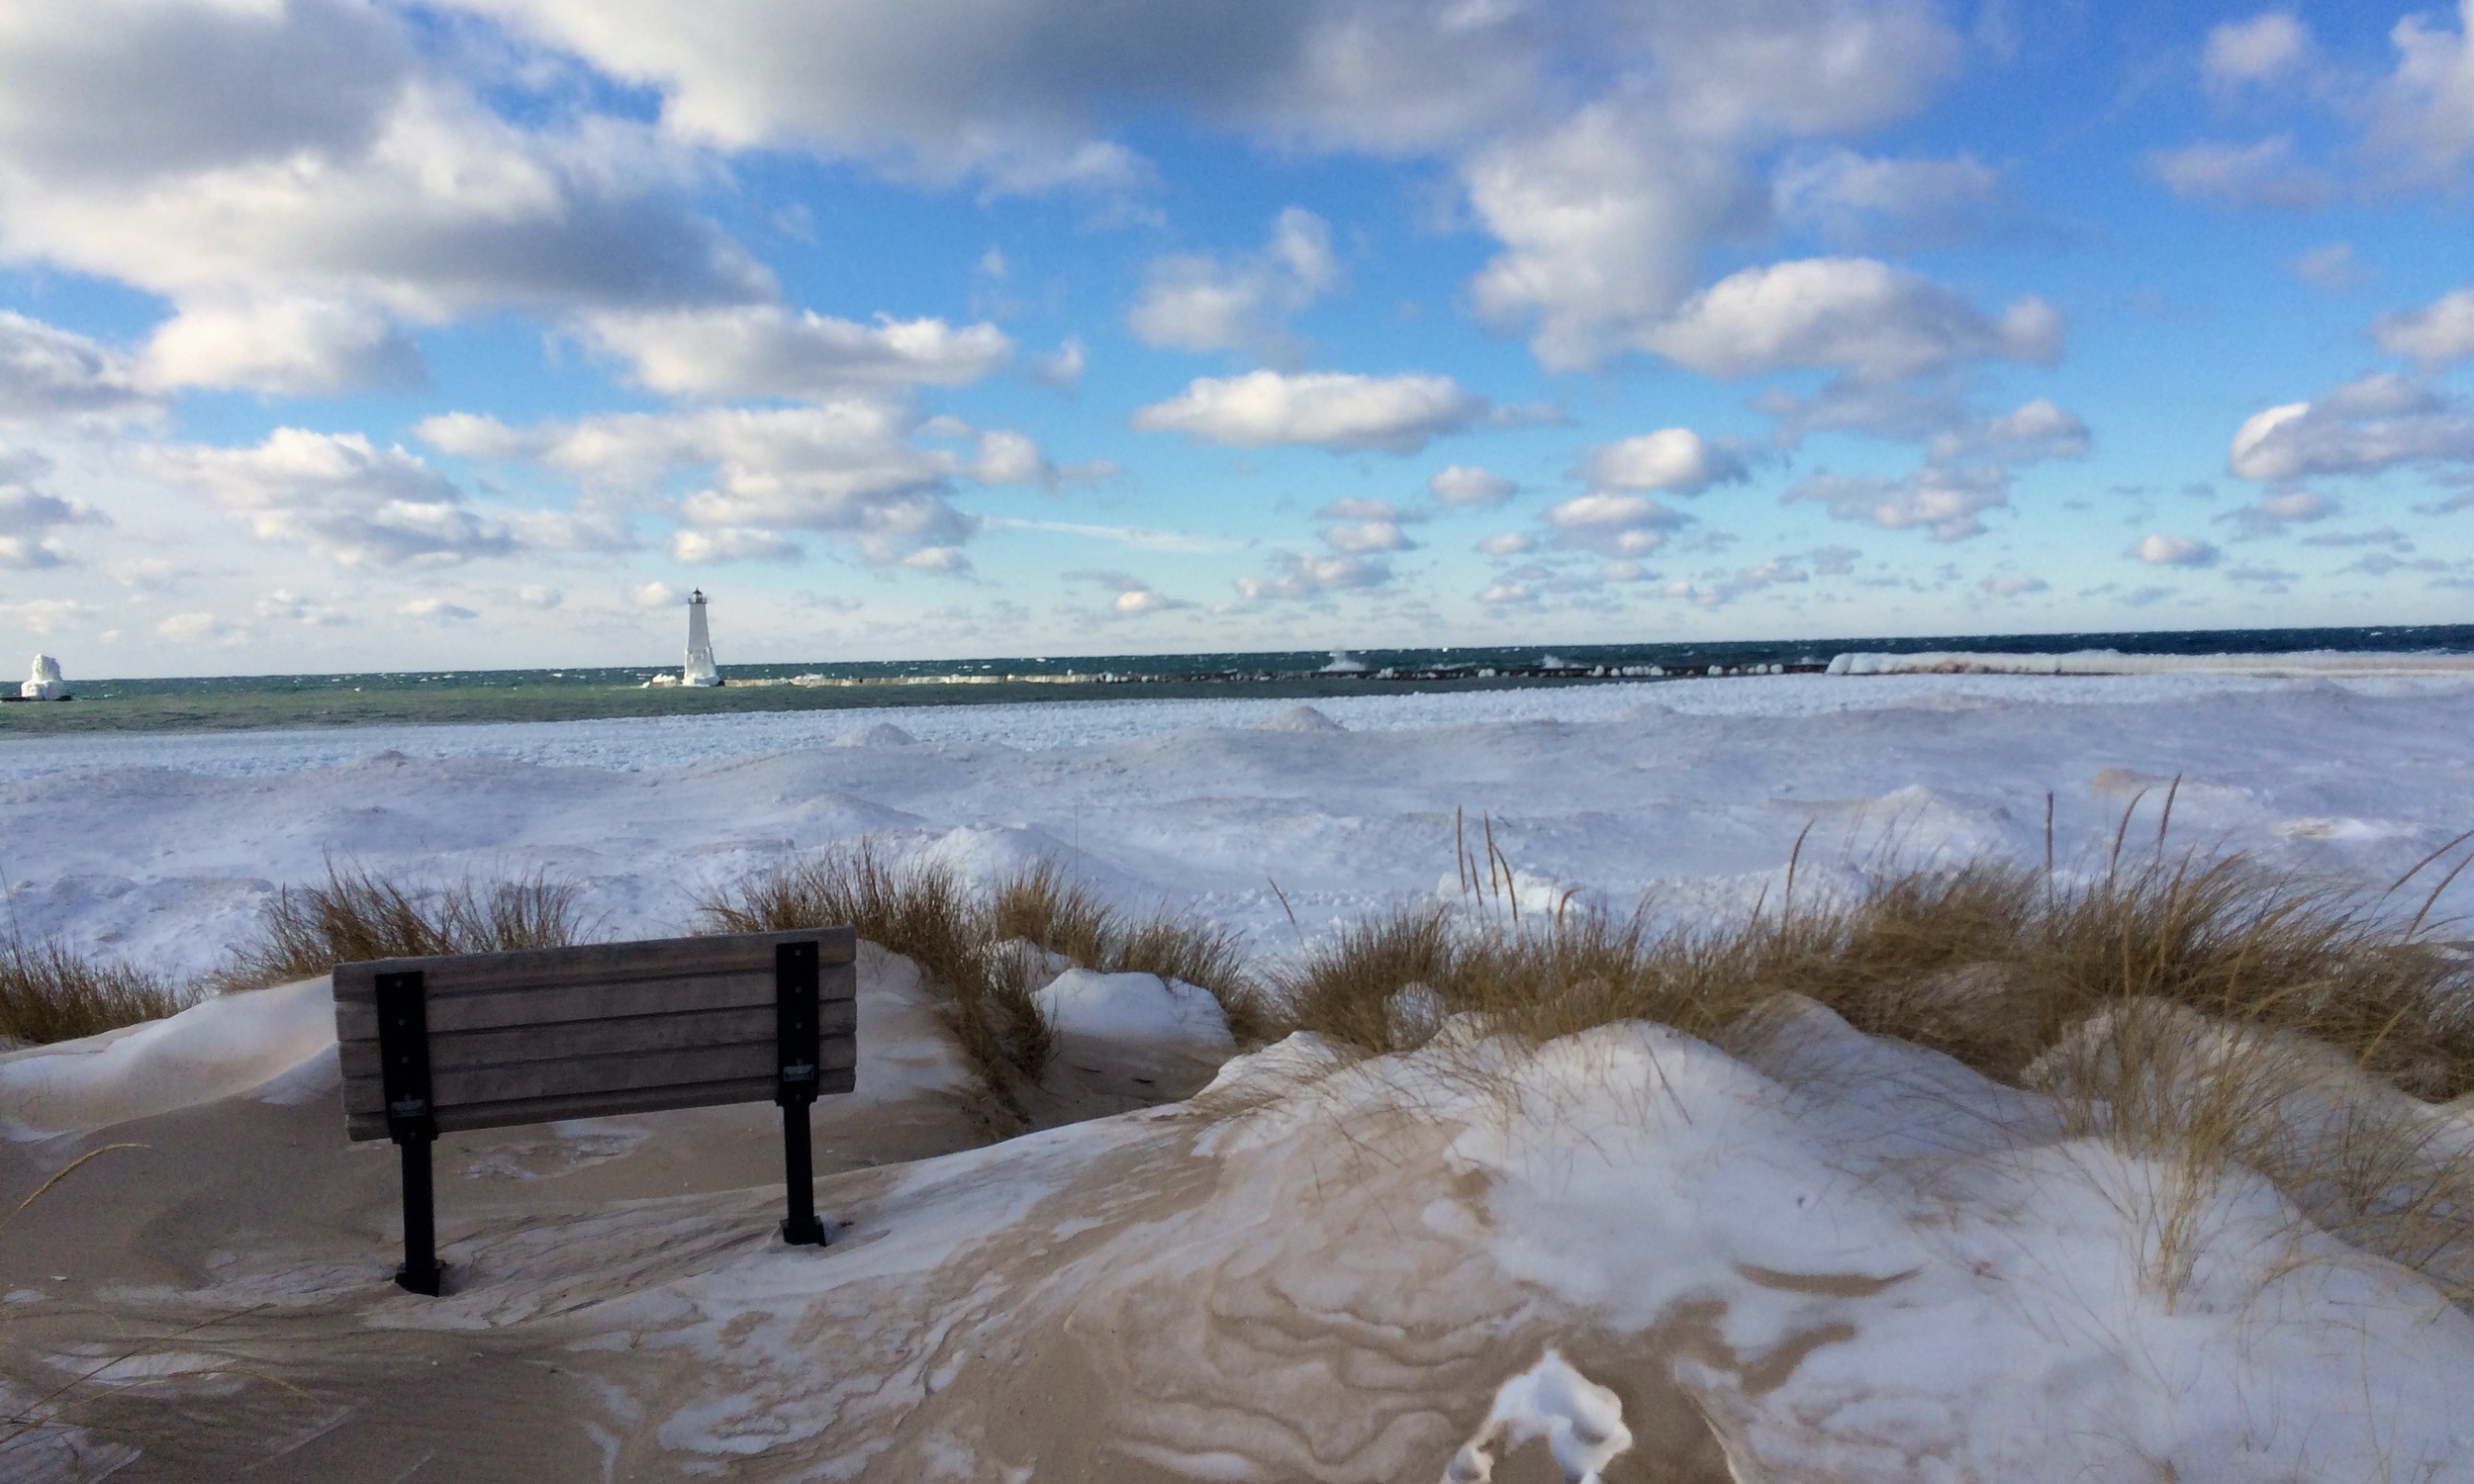 Lake Michigan coastline off Frankfort Harbor, January 2015.